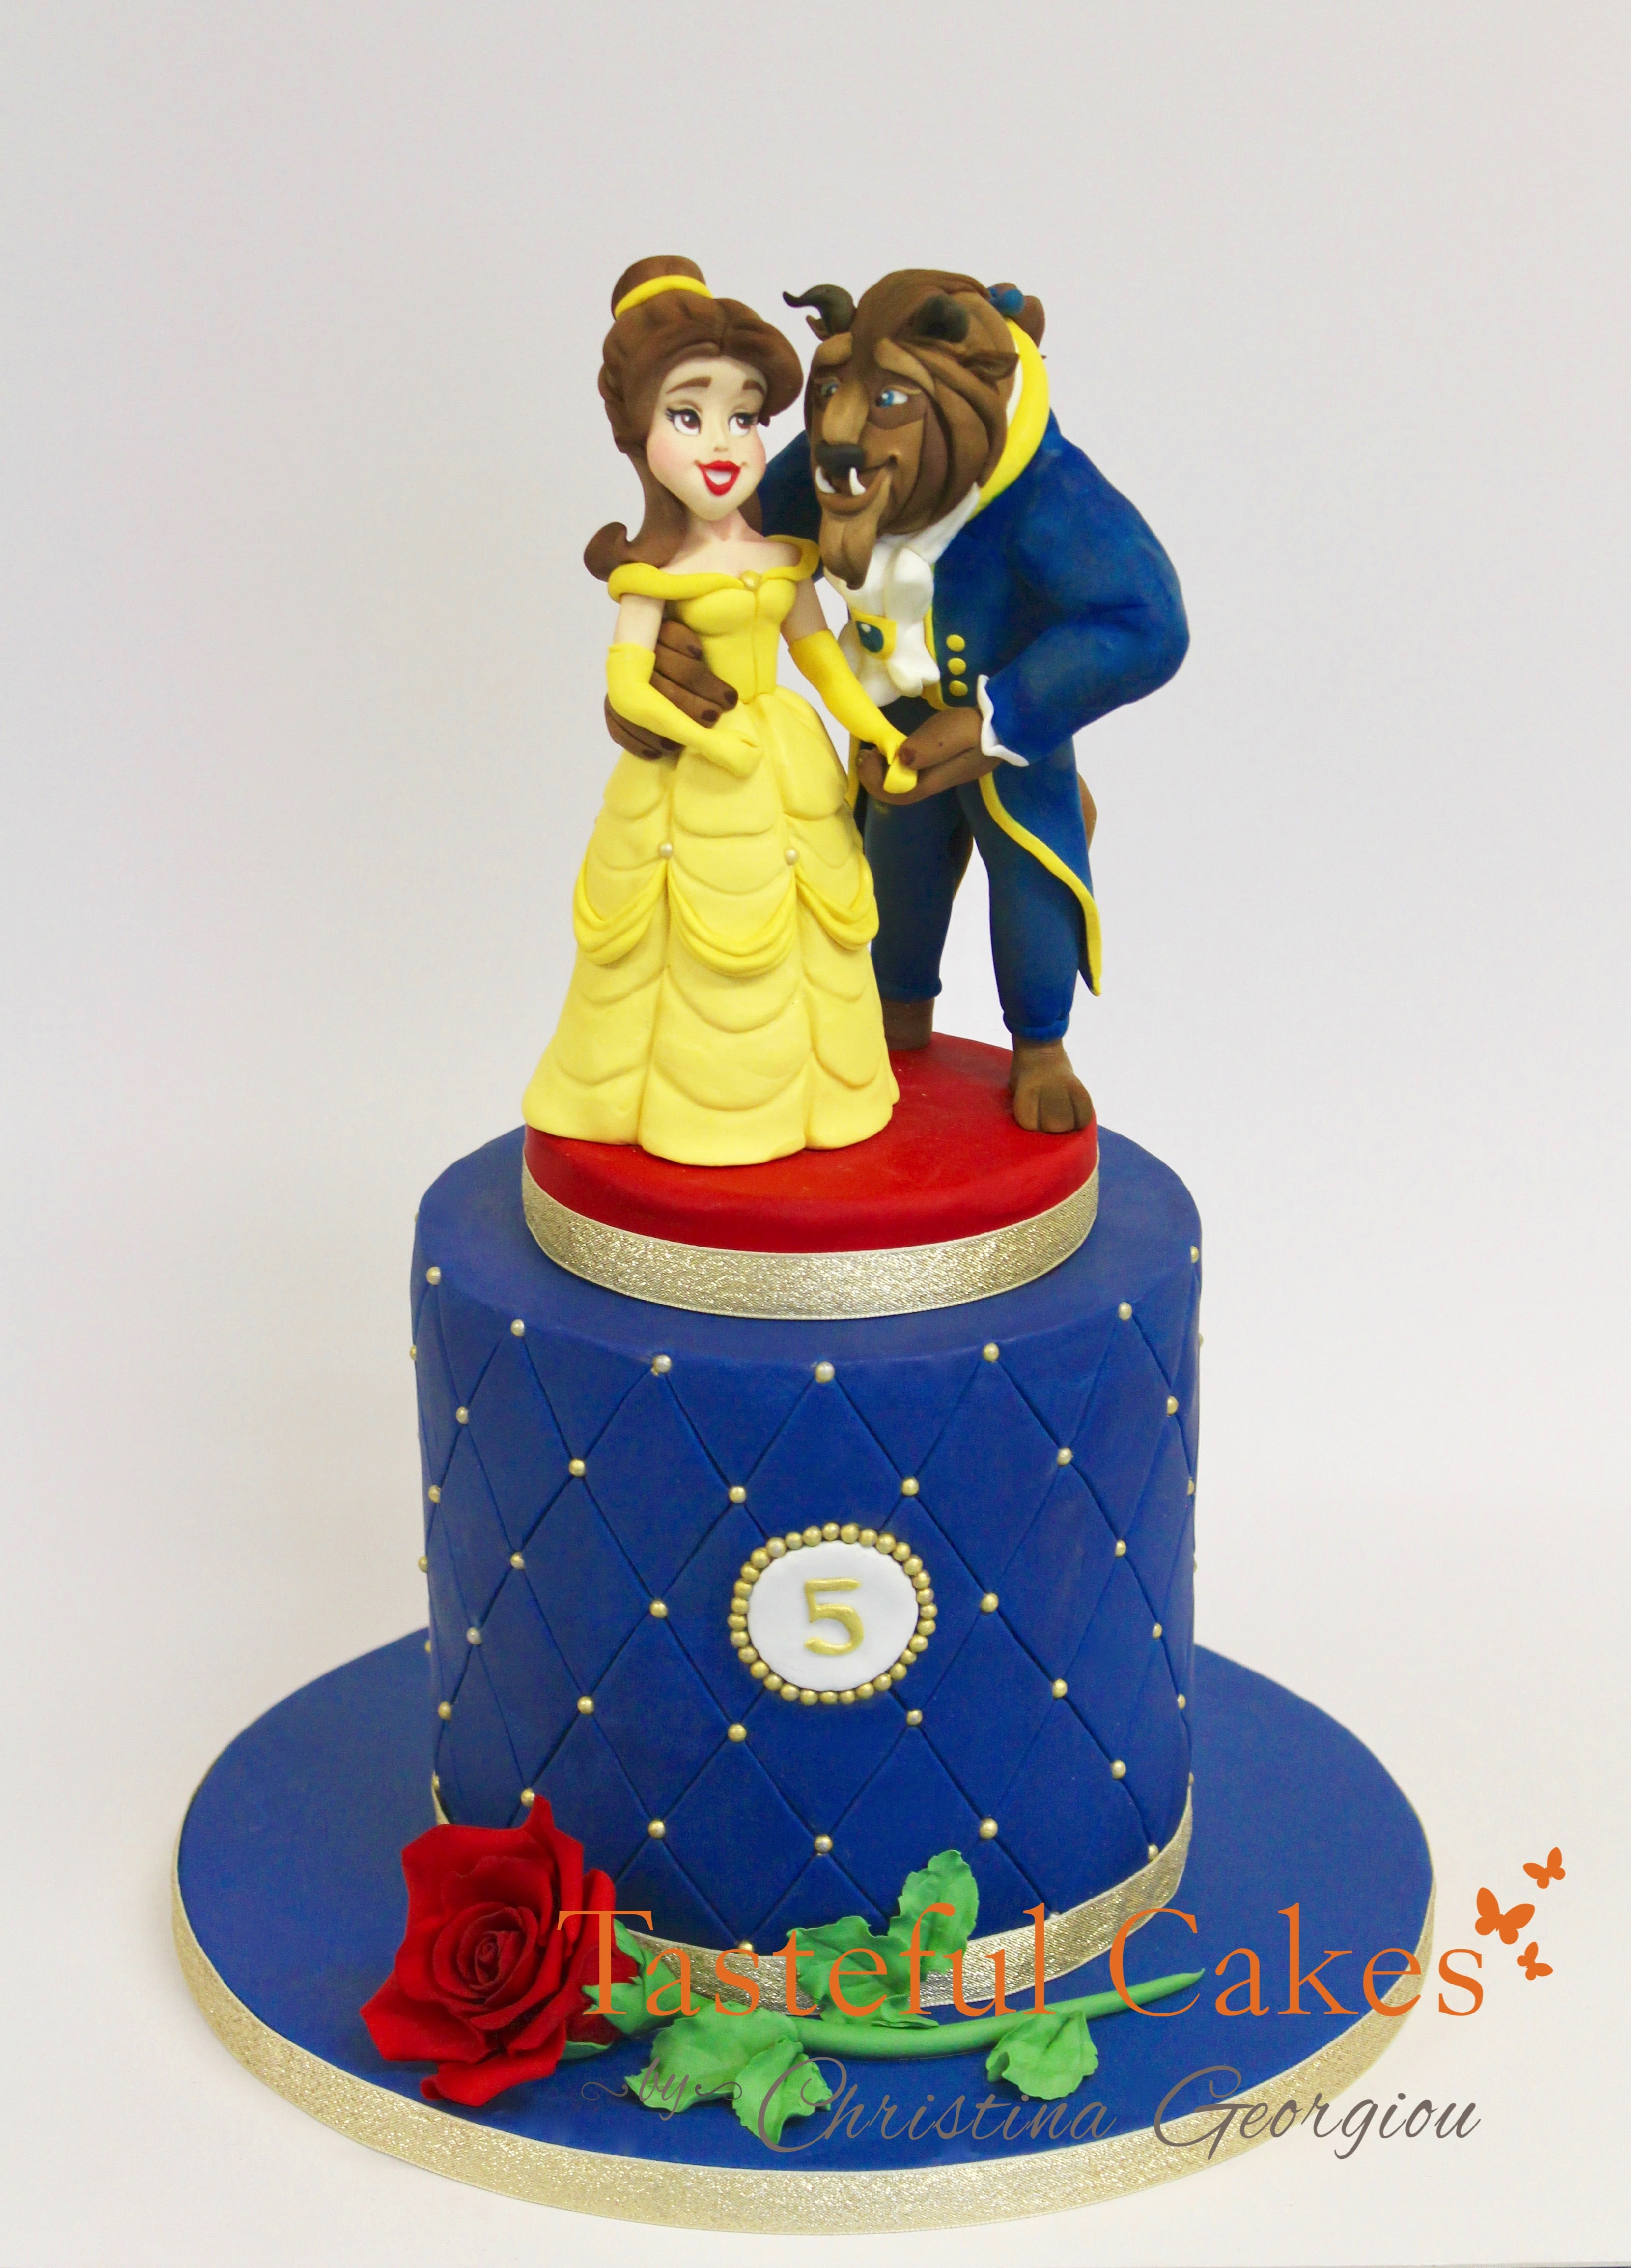 Tasteful Cakes By Christina Georgiou | Beauty and the Beast Birthday Cake